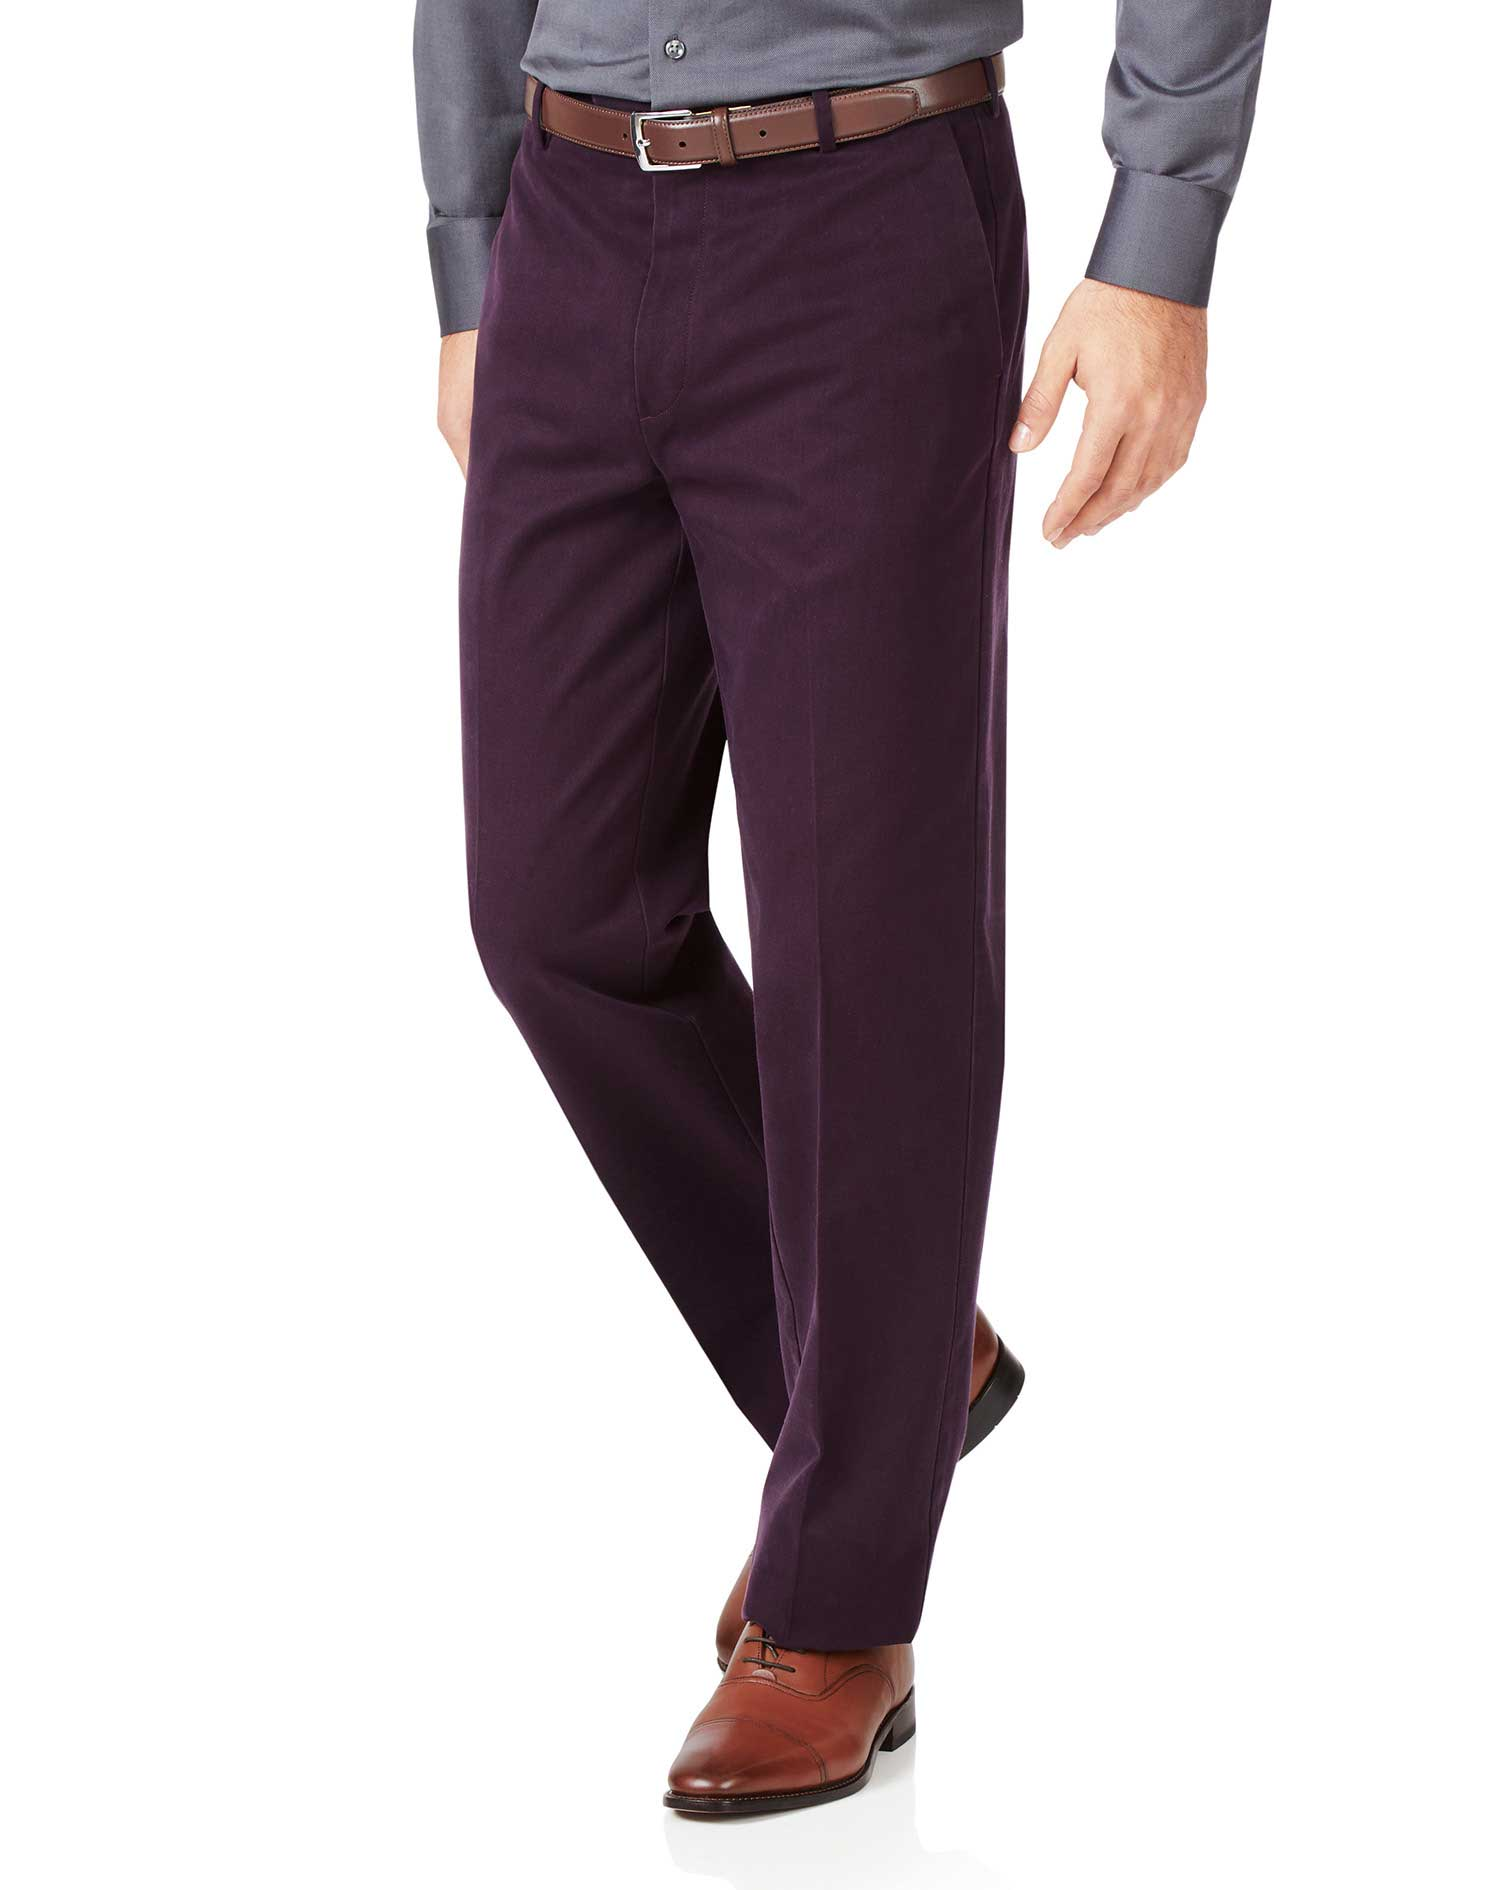 Aubergine Classic Fit Flat Front Non-Iron Cotton Chino Trousers Size W40 L32 by Charles Tyrwhitt